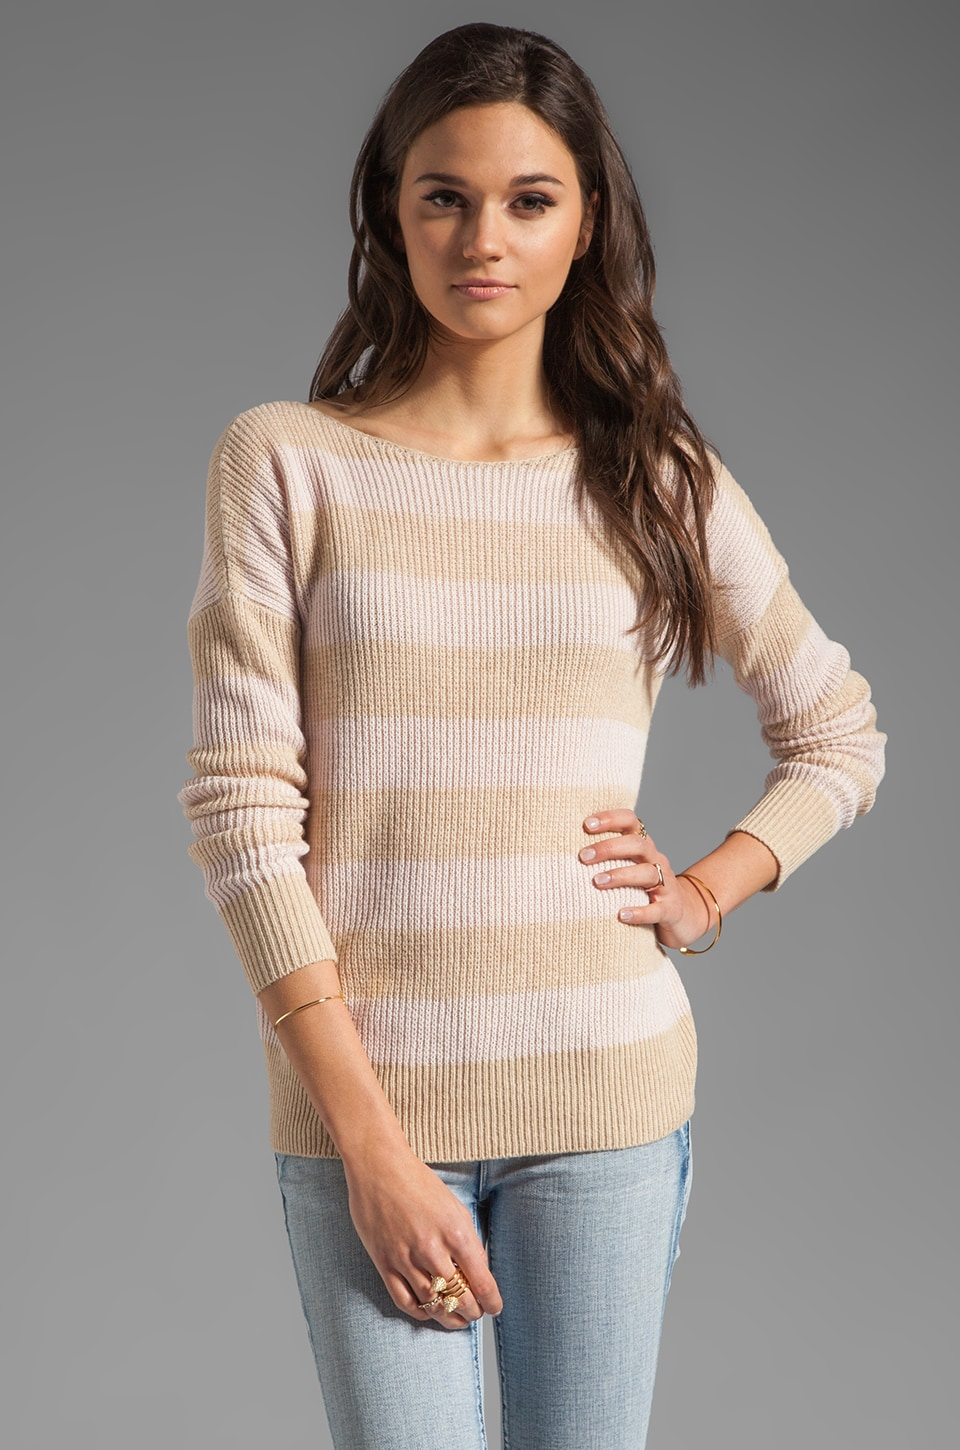 Theory Cashmere Jilliane S Striped Sweater in Floret/Oatmeal